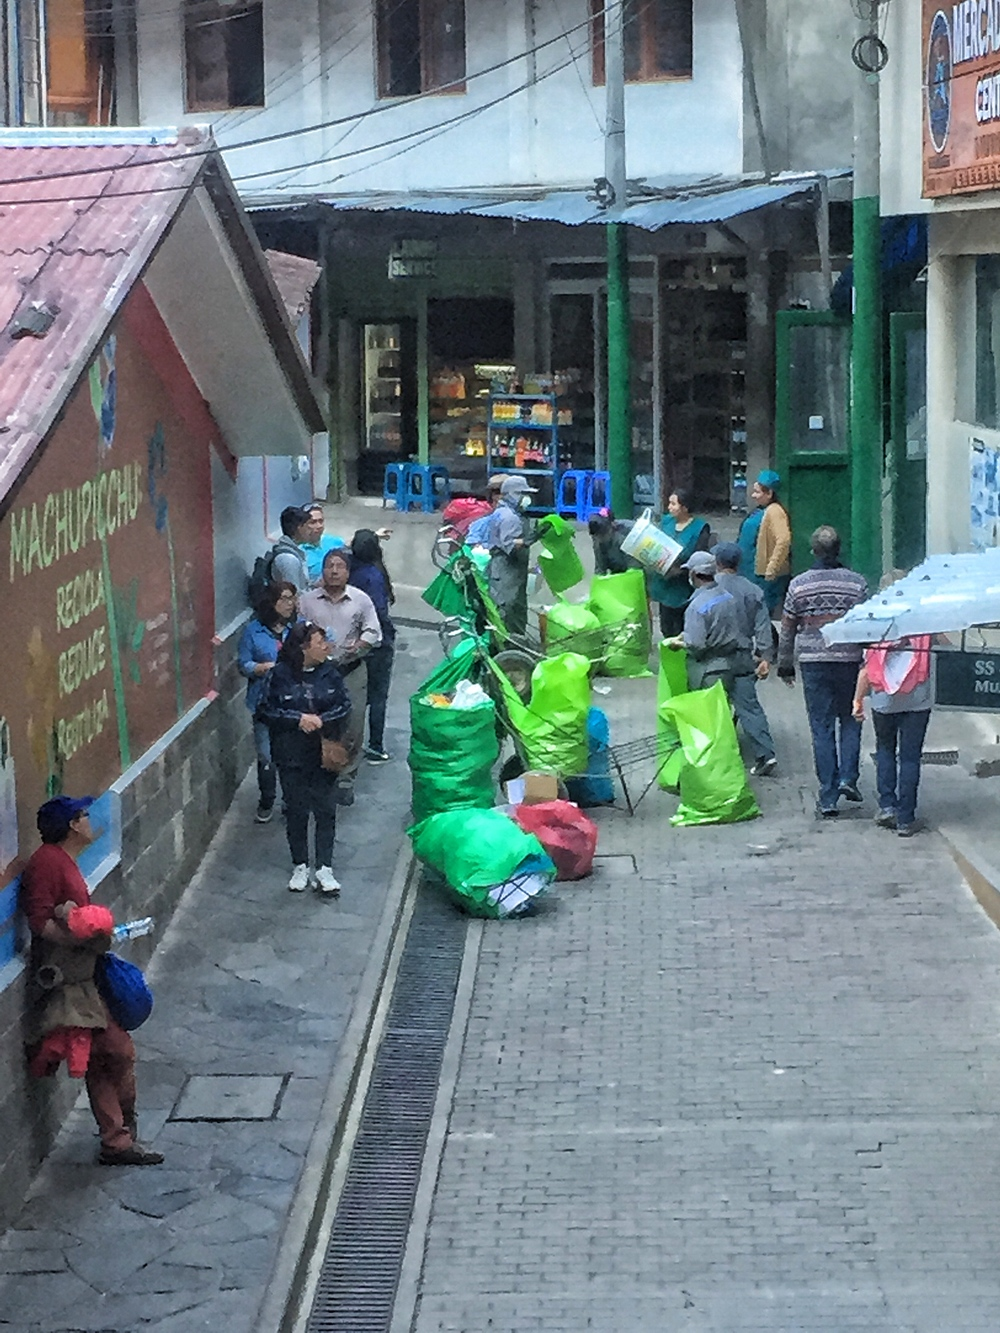 Trash being separated in Aguas Calientes.  Note that the workers have thick rubber globes, masks and full gear on as they separate the trash.